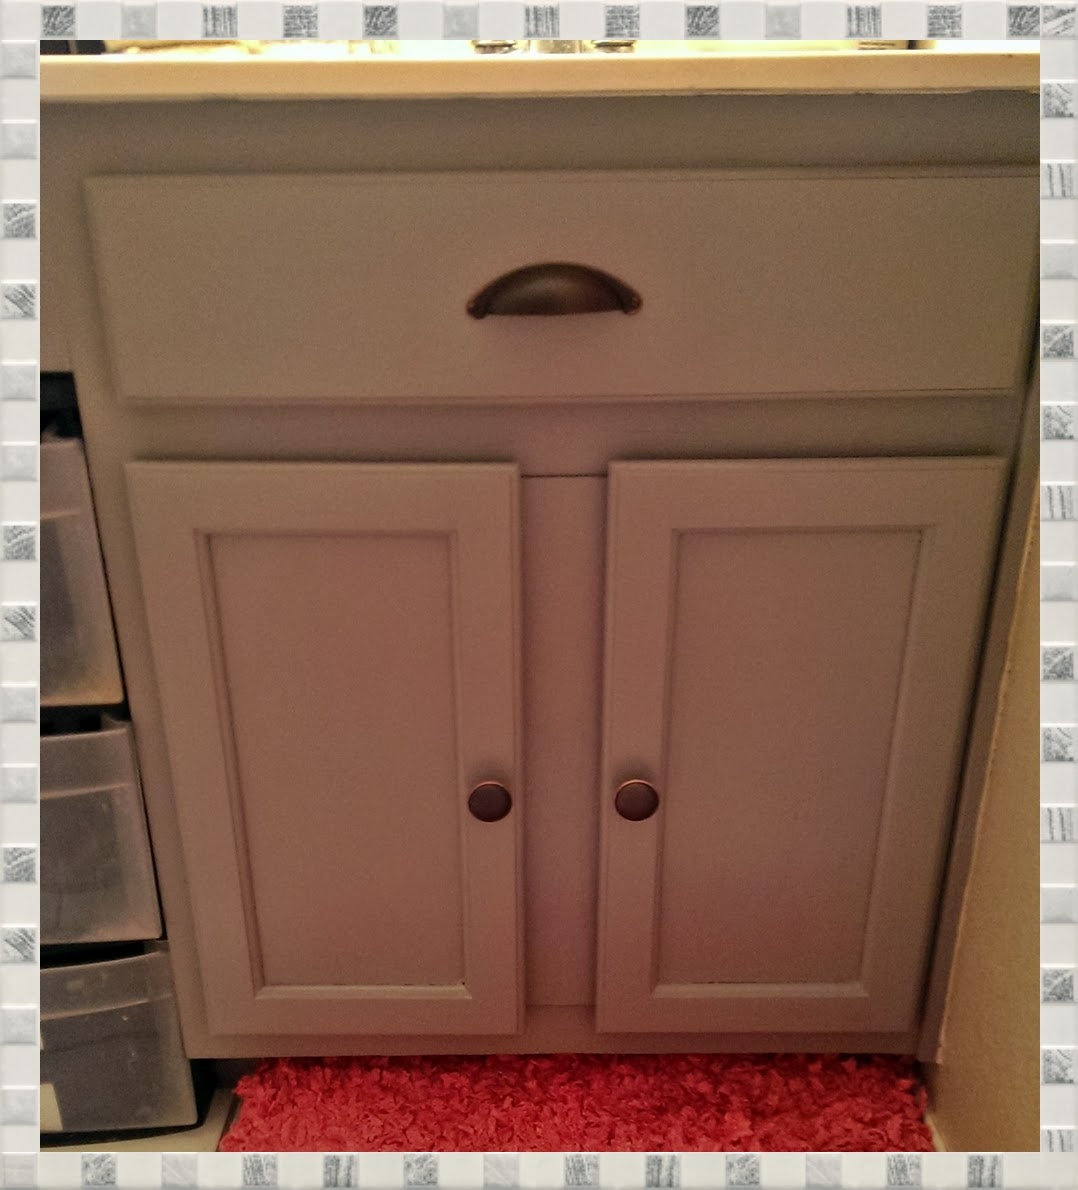 How To Paint Over Stained Bathroom Cabinets meg-made creations: paint bathroom cabinets diy - how to paint